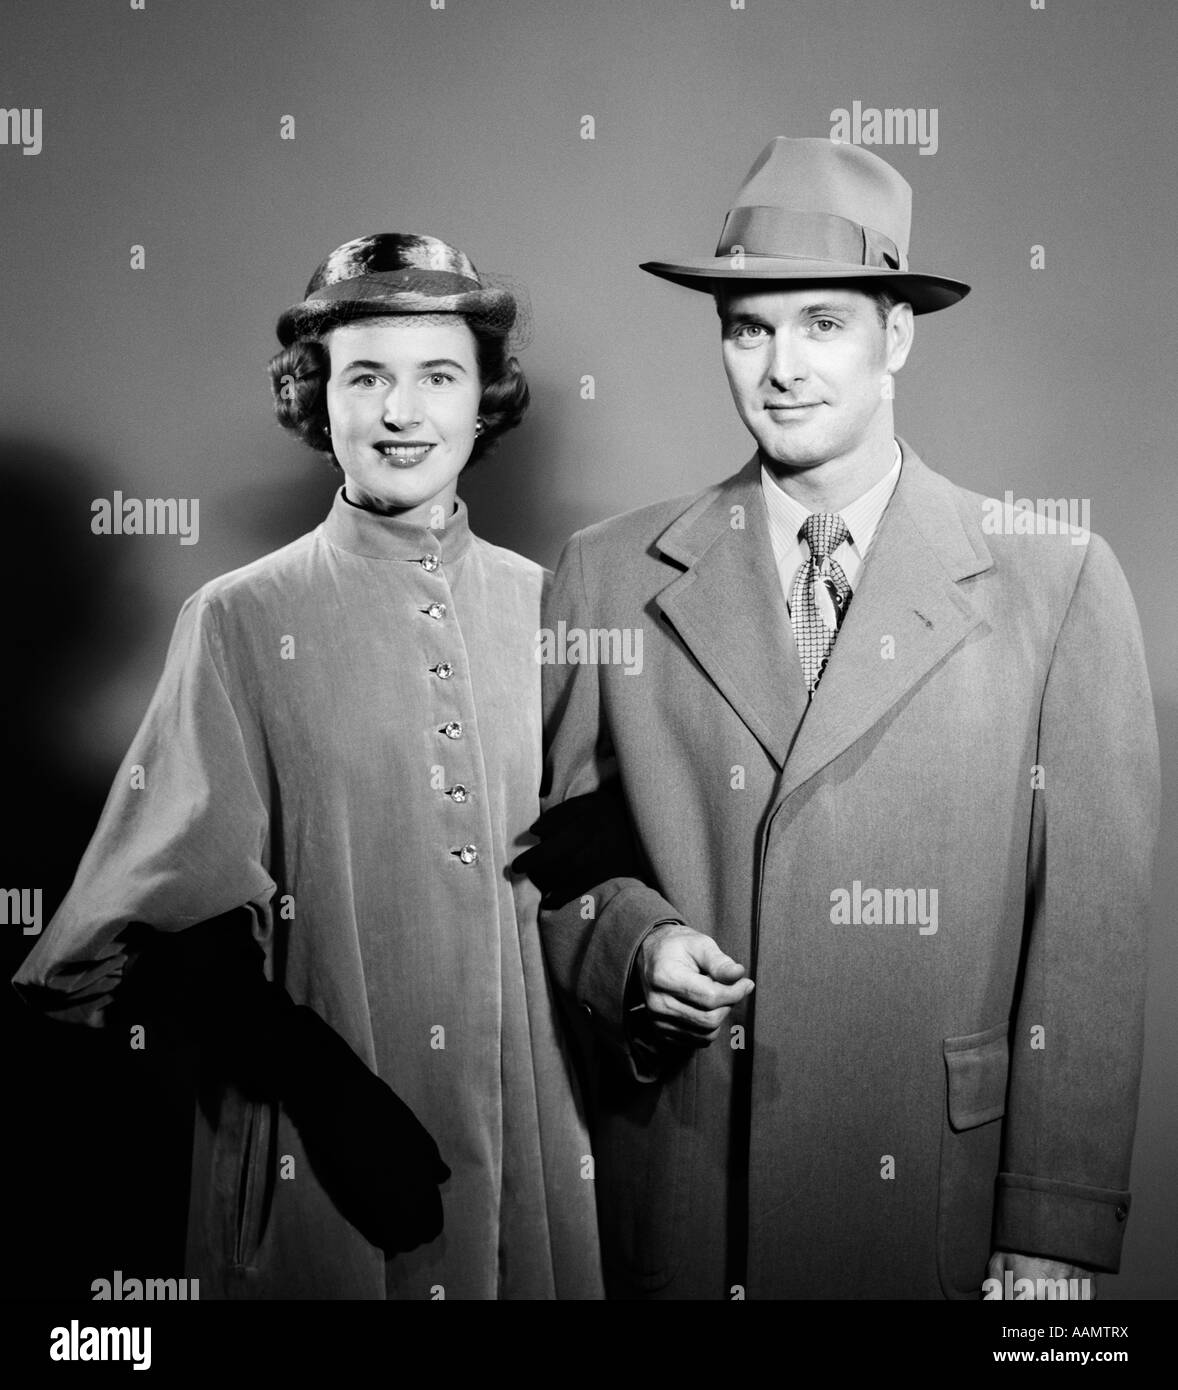 1940s 1950s COUPLE MAN WOMAN SIDE BY SIDE WEARING OUTDOOR ...